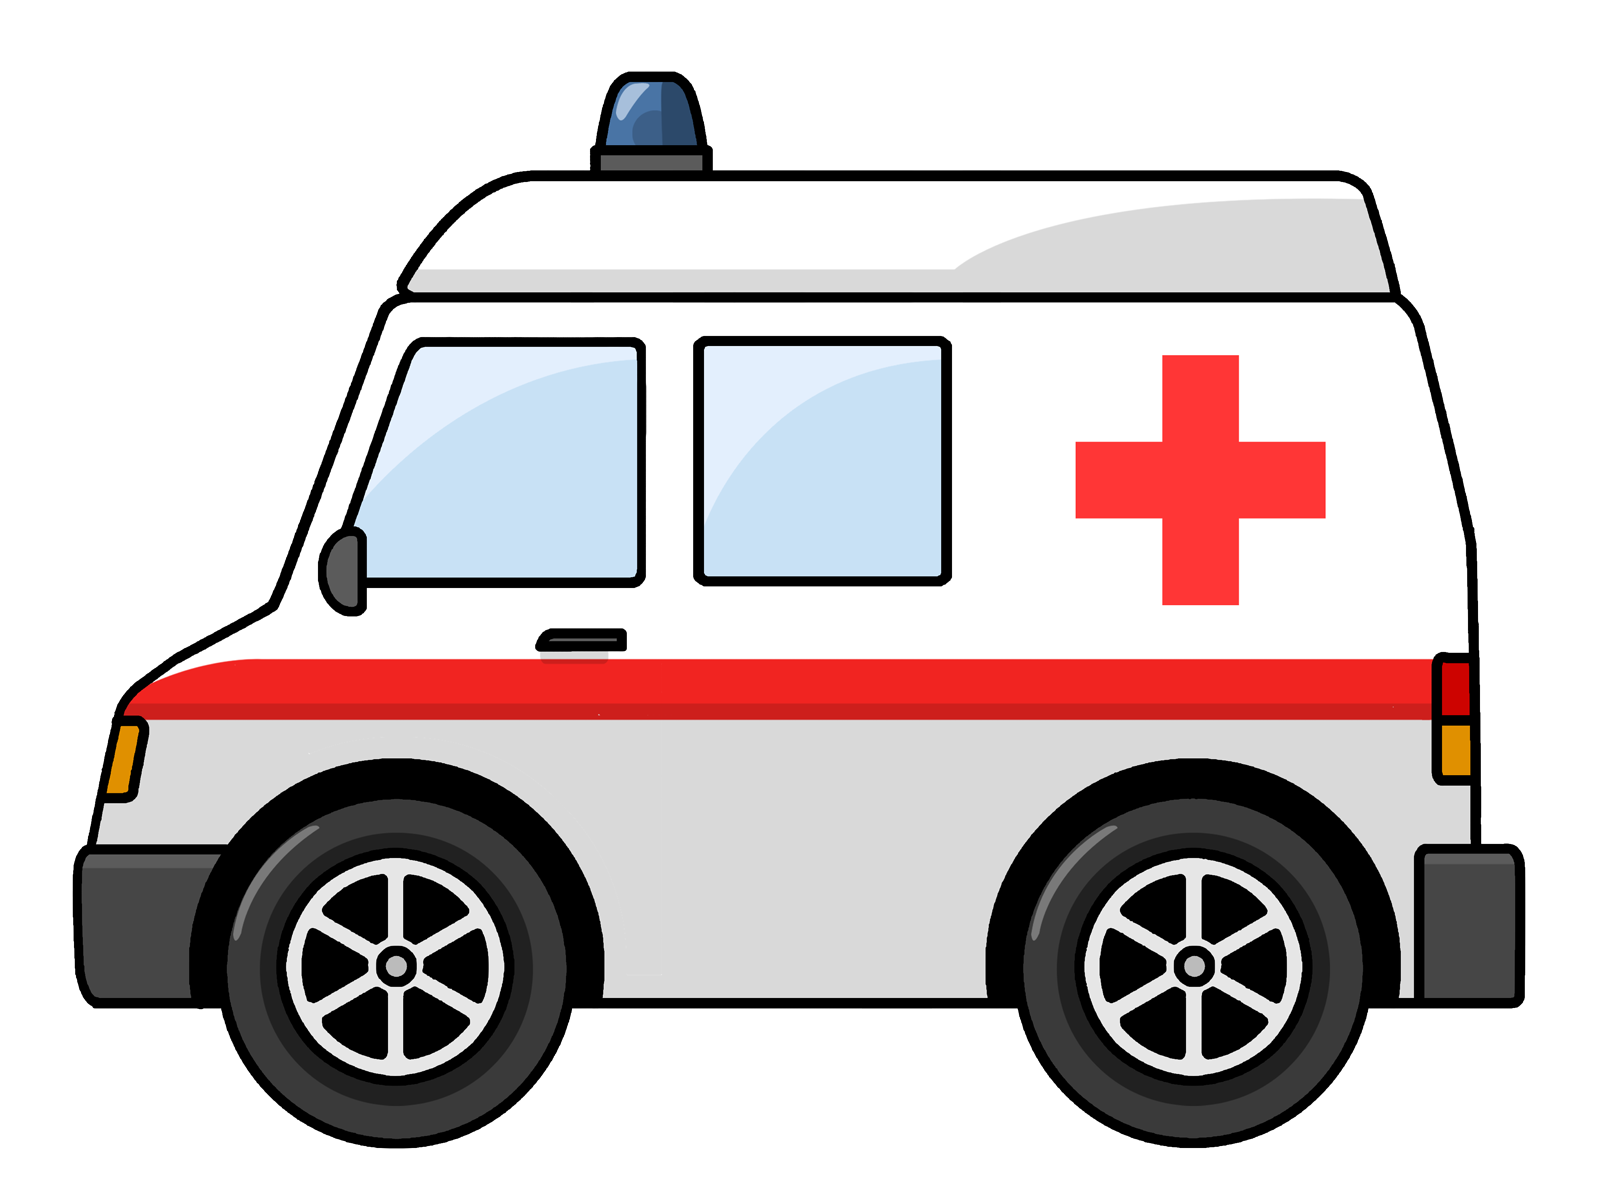 ambulance - Seeing an ambulance is very -ambulance - Seeing an ambulance is very unlucky unless you pinch your nose  or hold your-3